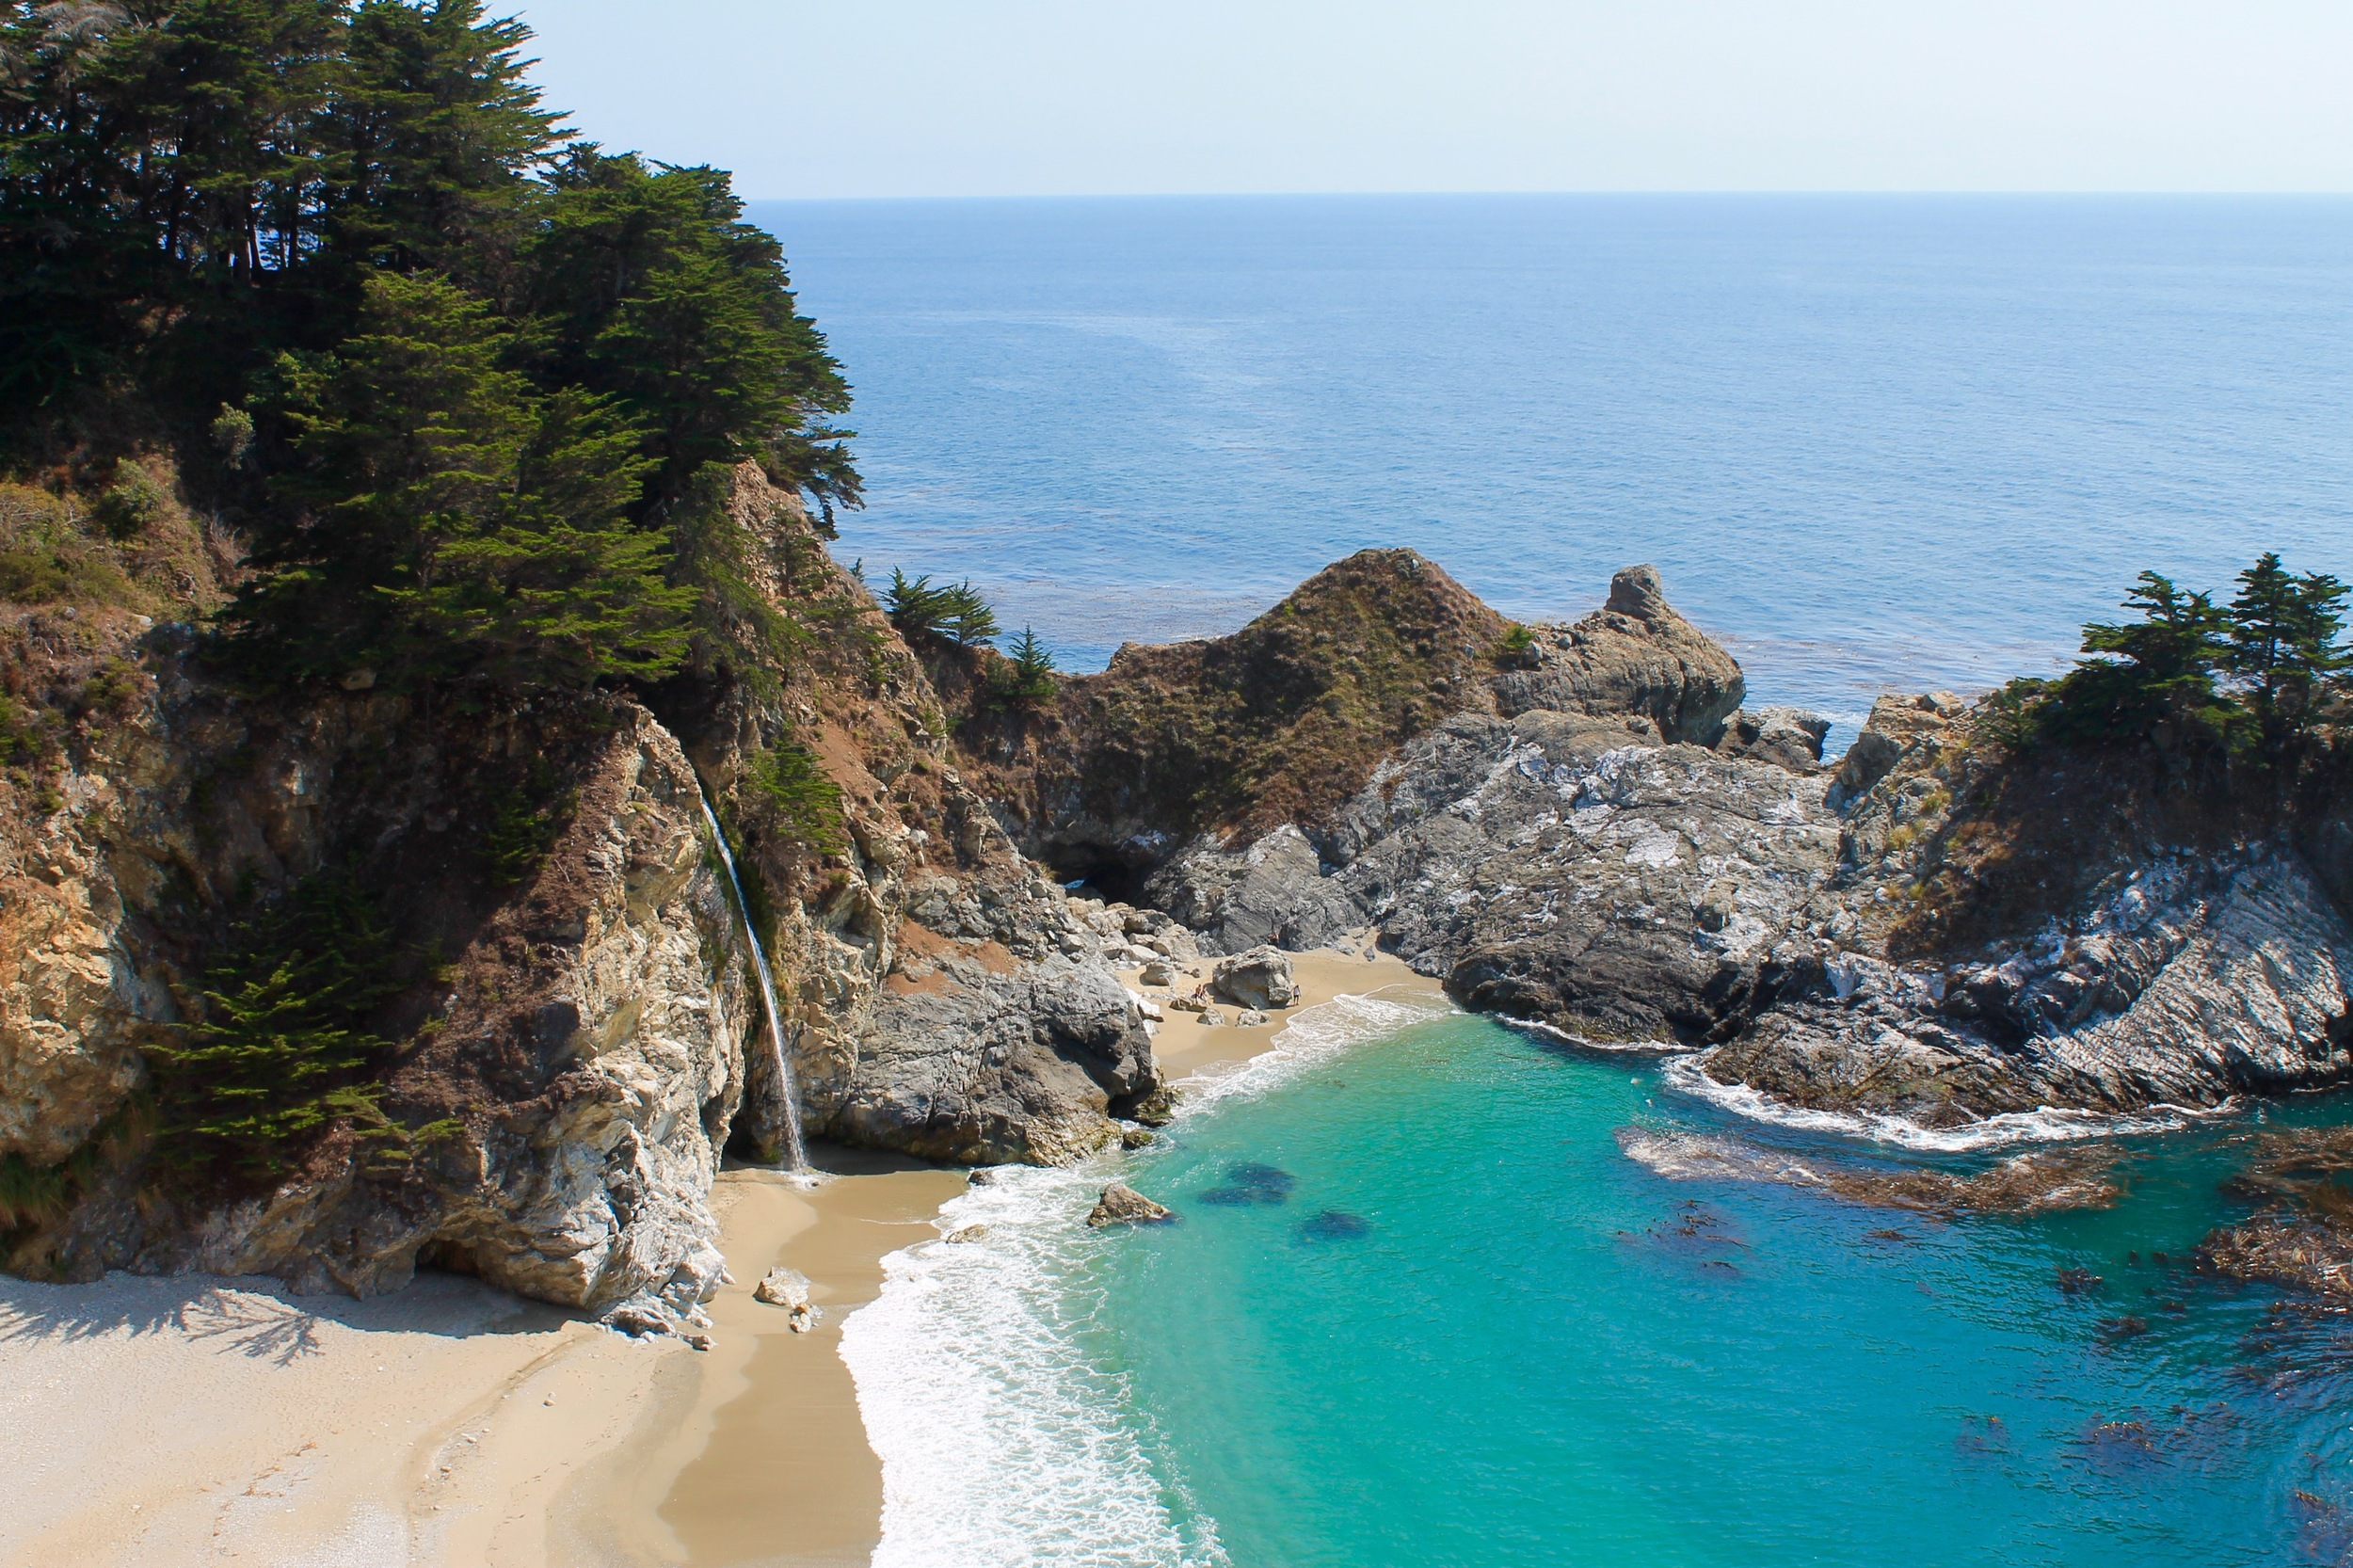 McWay Falls cascades straight into the ocean at high tide.  Yes the water really is that blue!